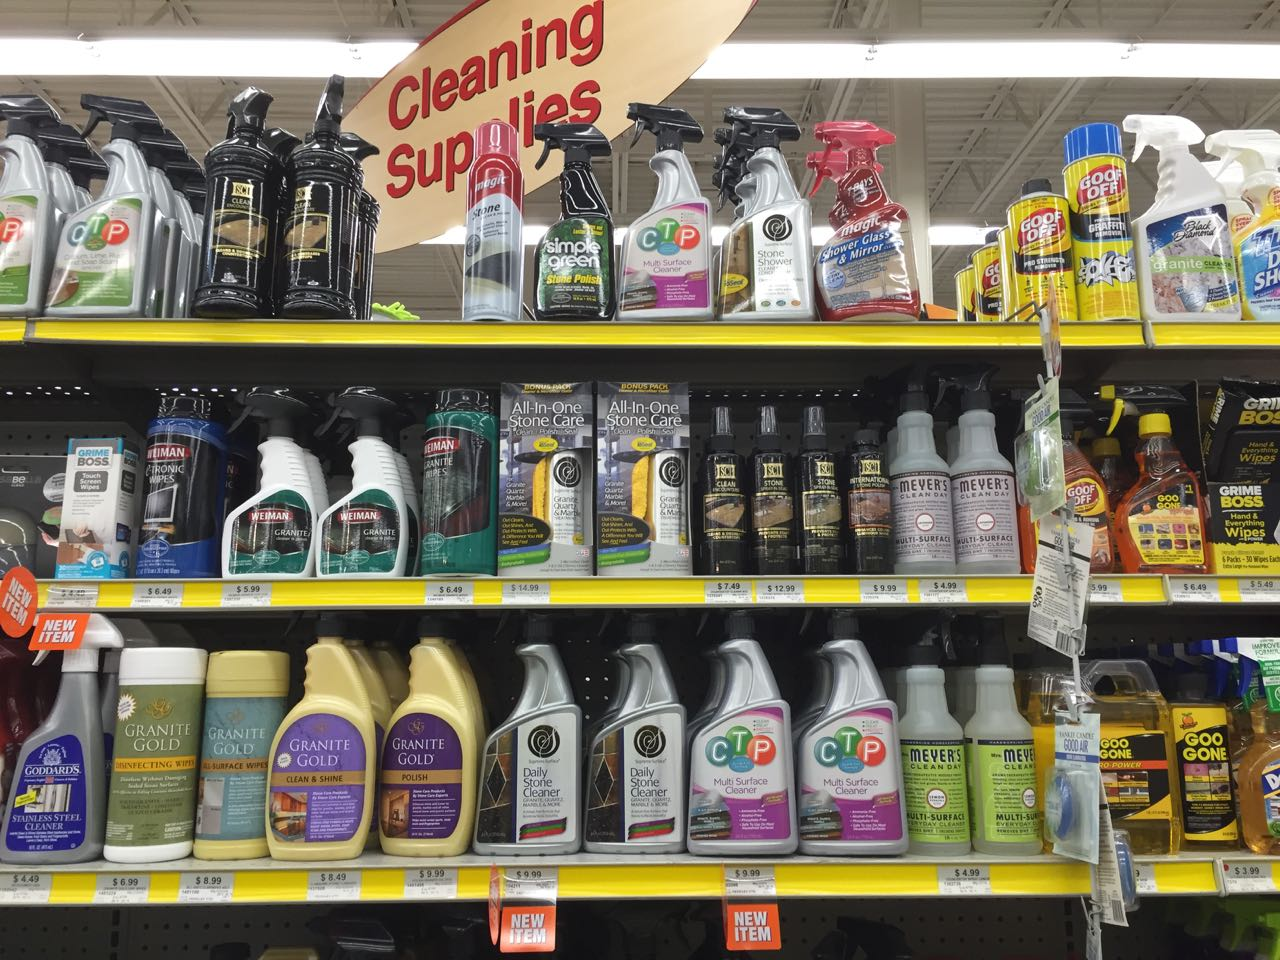 Munro-Co brands; Supreme Surface, CTP Multi-Surface and MunroCo Streak-Free Cleaner on store shelves at Select Ace Hardware stores around Chicago